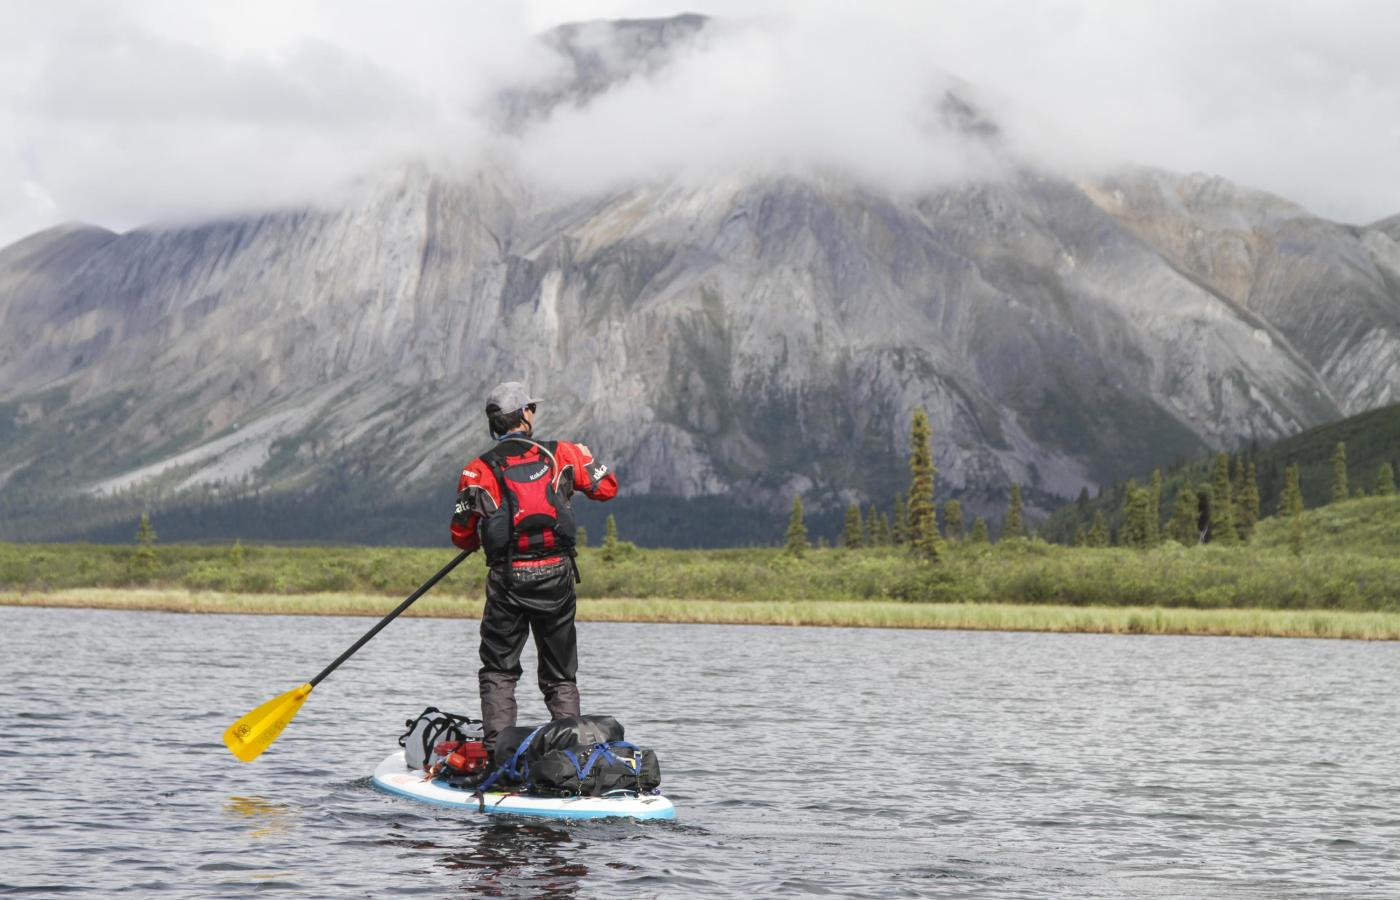 stand up paddling on the mountain river